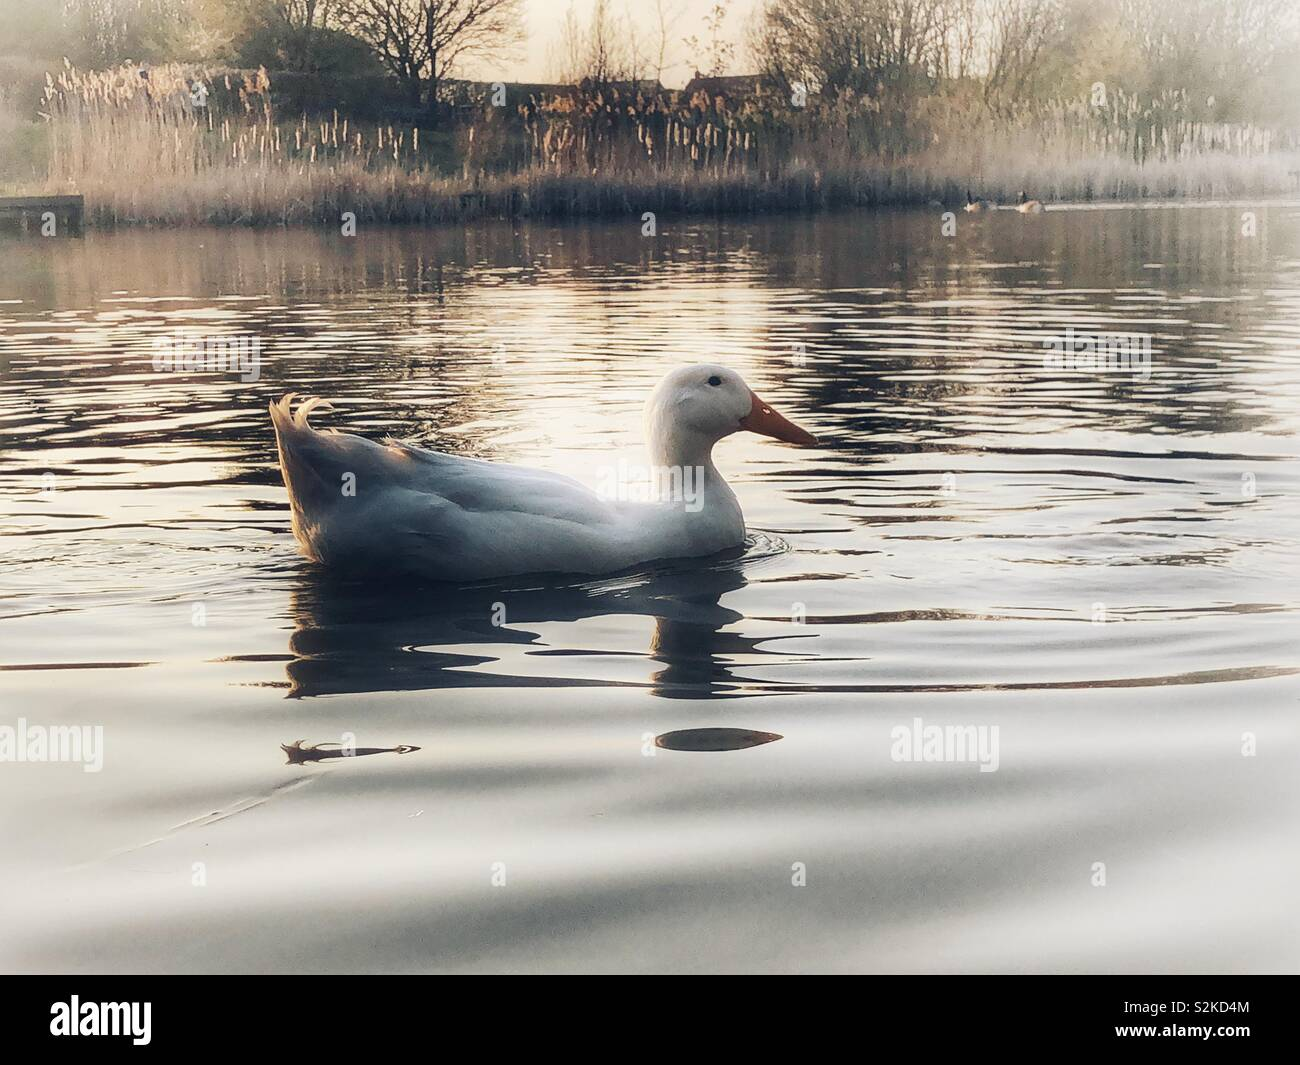 Heavy white Aylesbury duck swimming on a calm lake - Stock Image